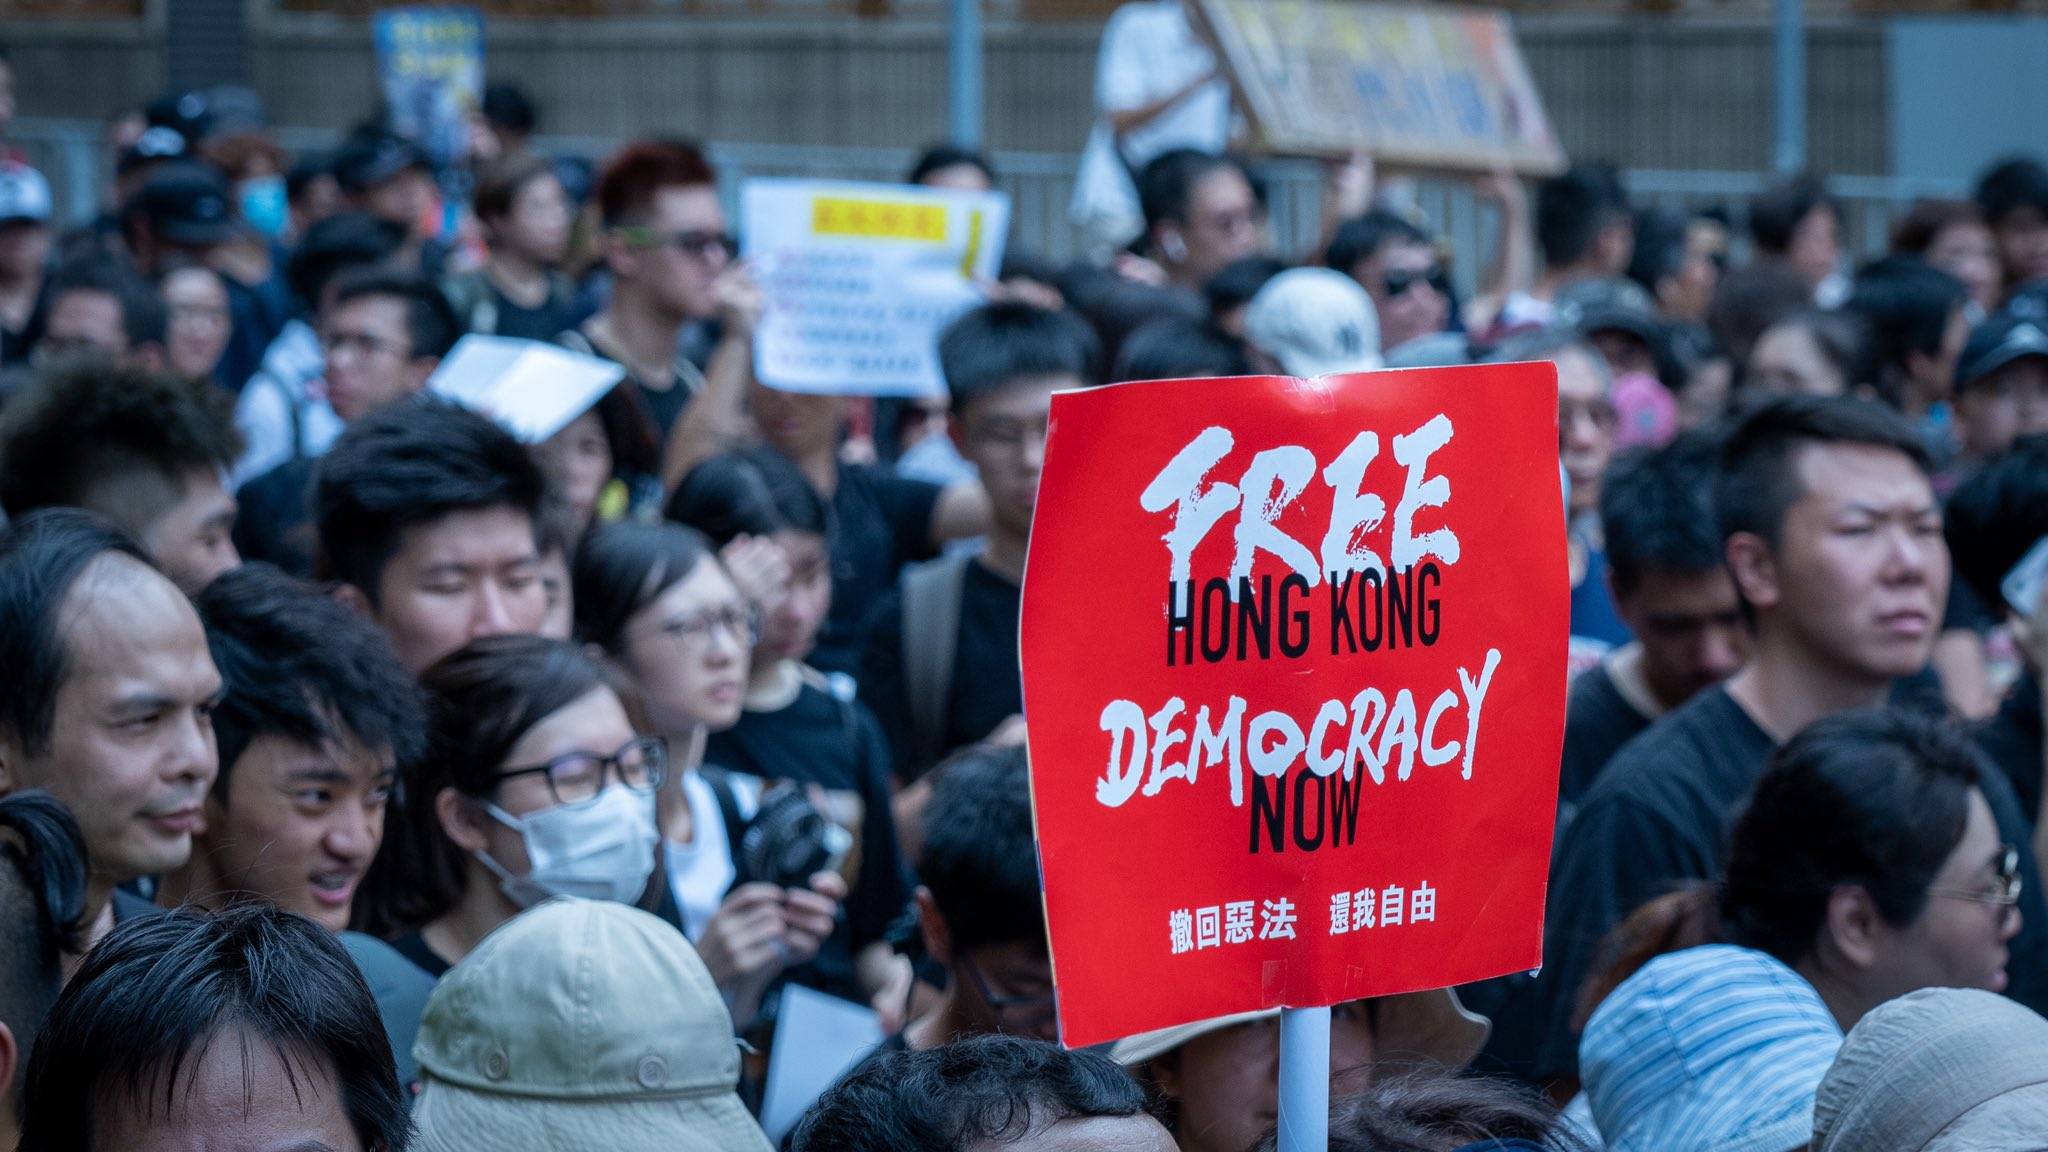 The ECR displays its support for Hong Kong with an exchange of views with pro-democracy activists